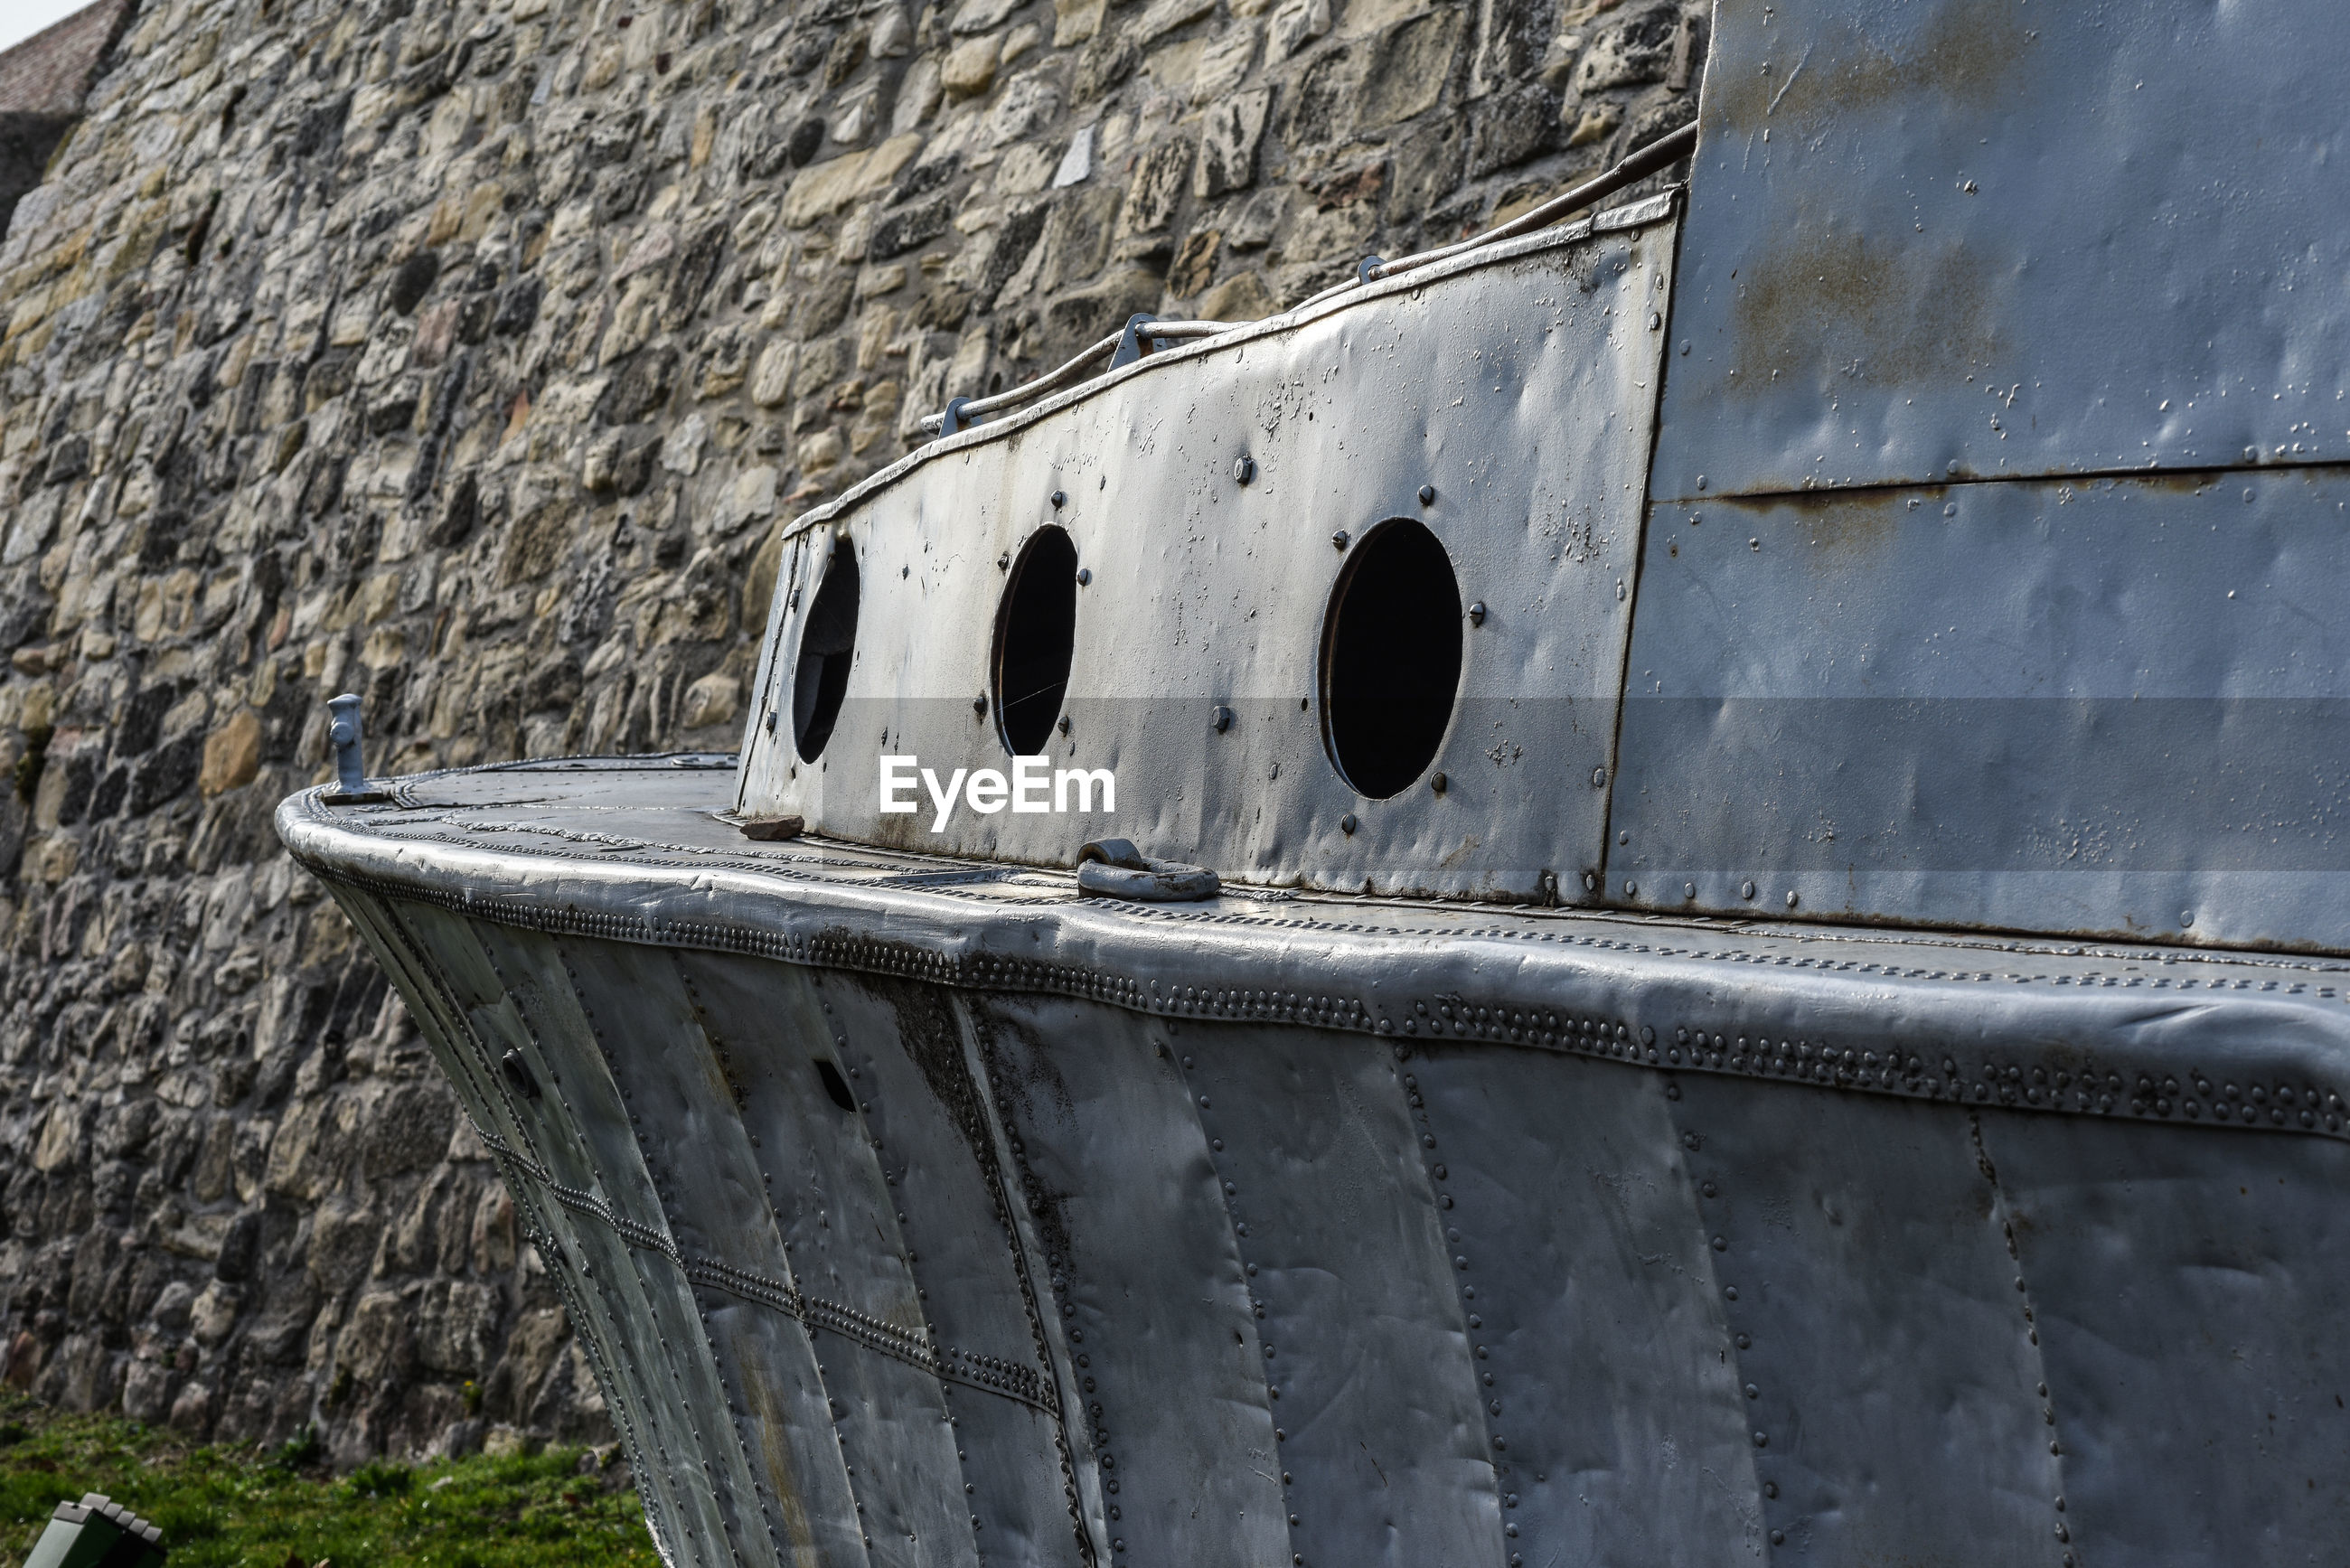 Low angle view of old boat against stone wall